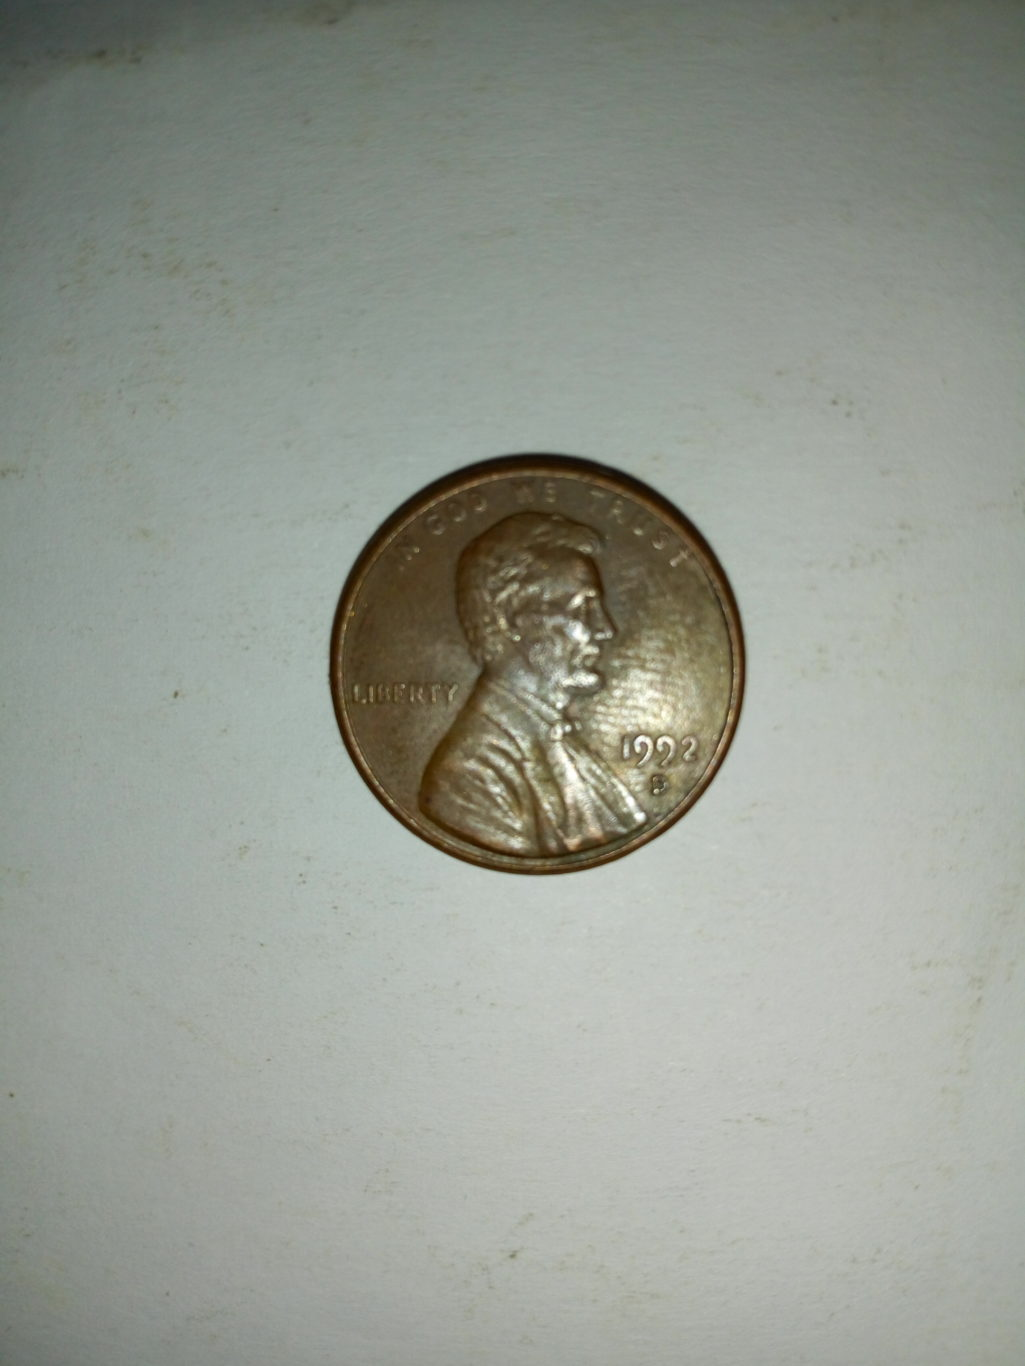 1992_united States of America 1 cent